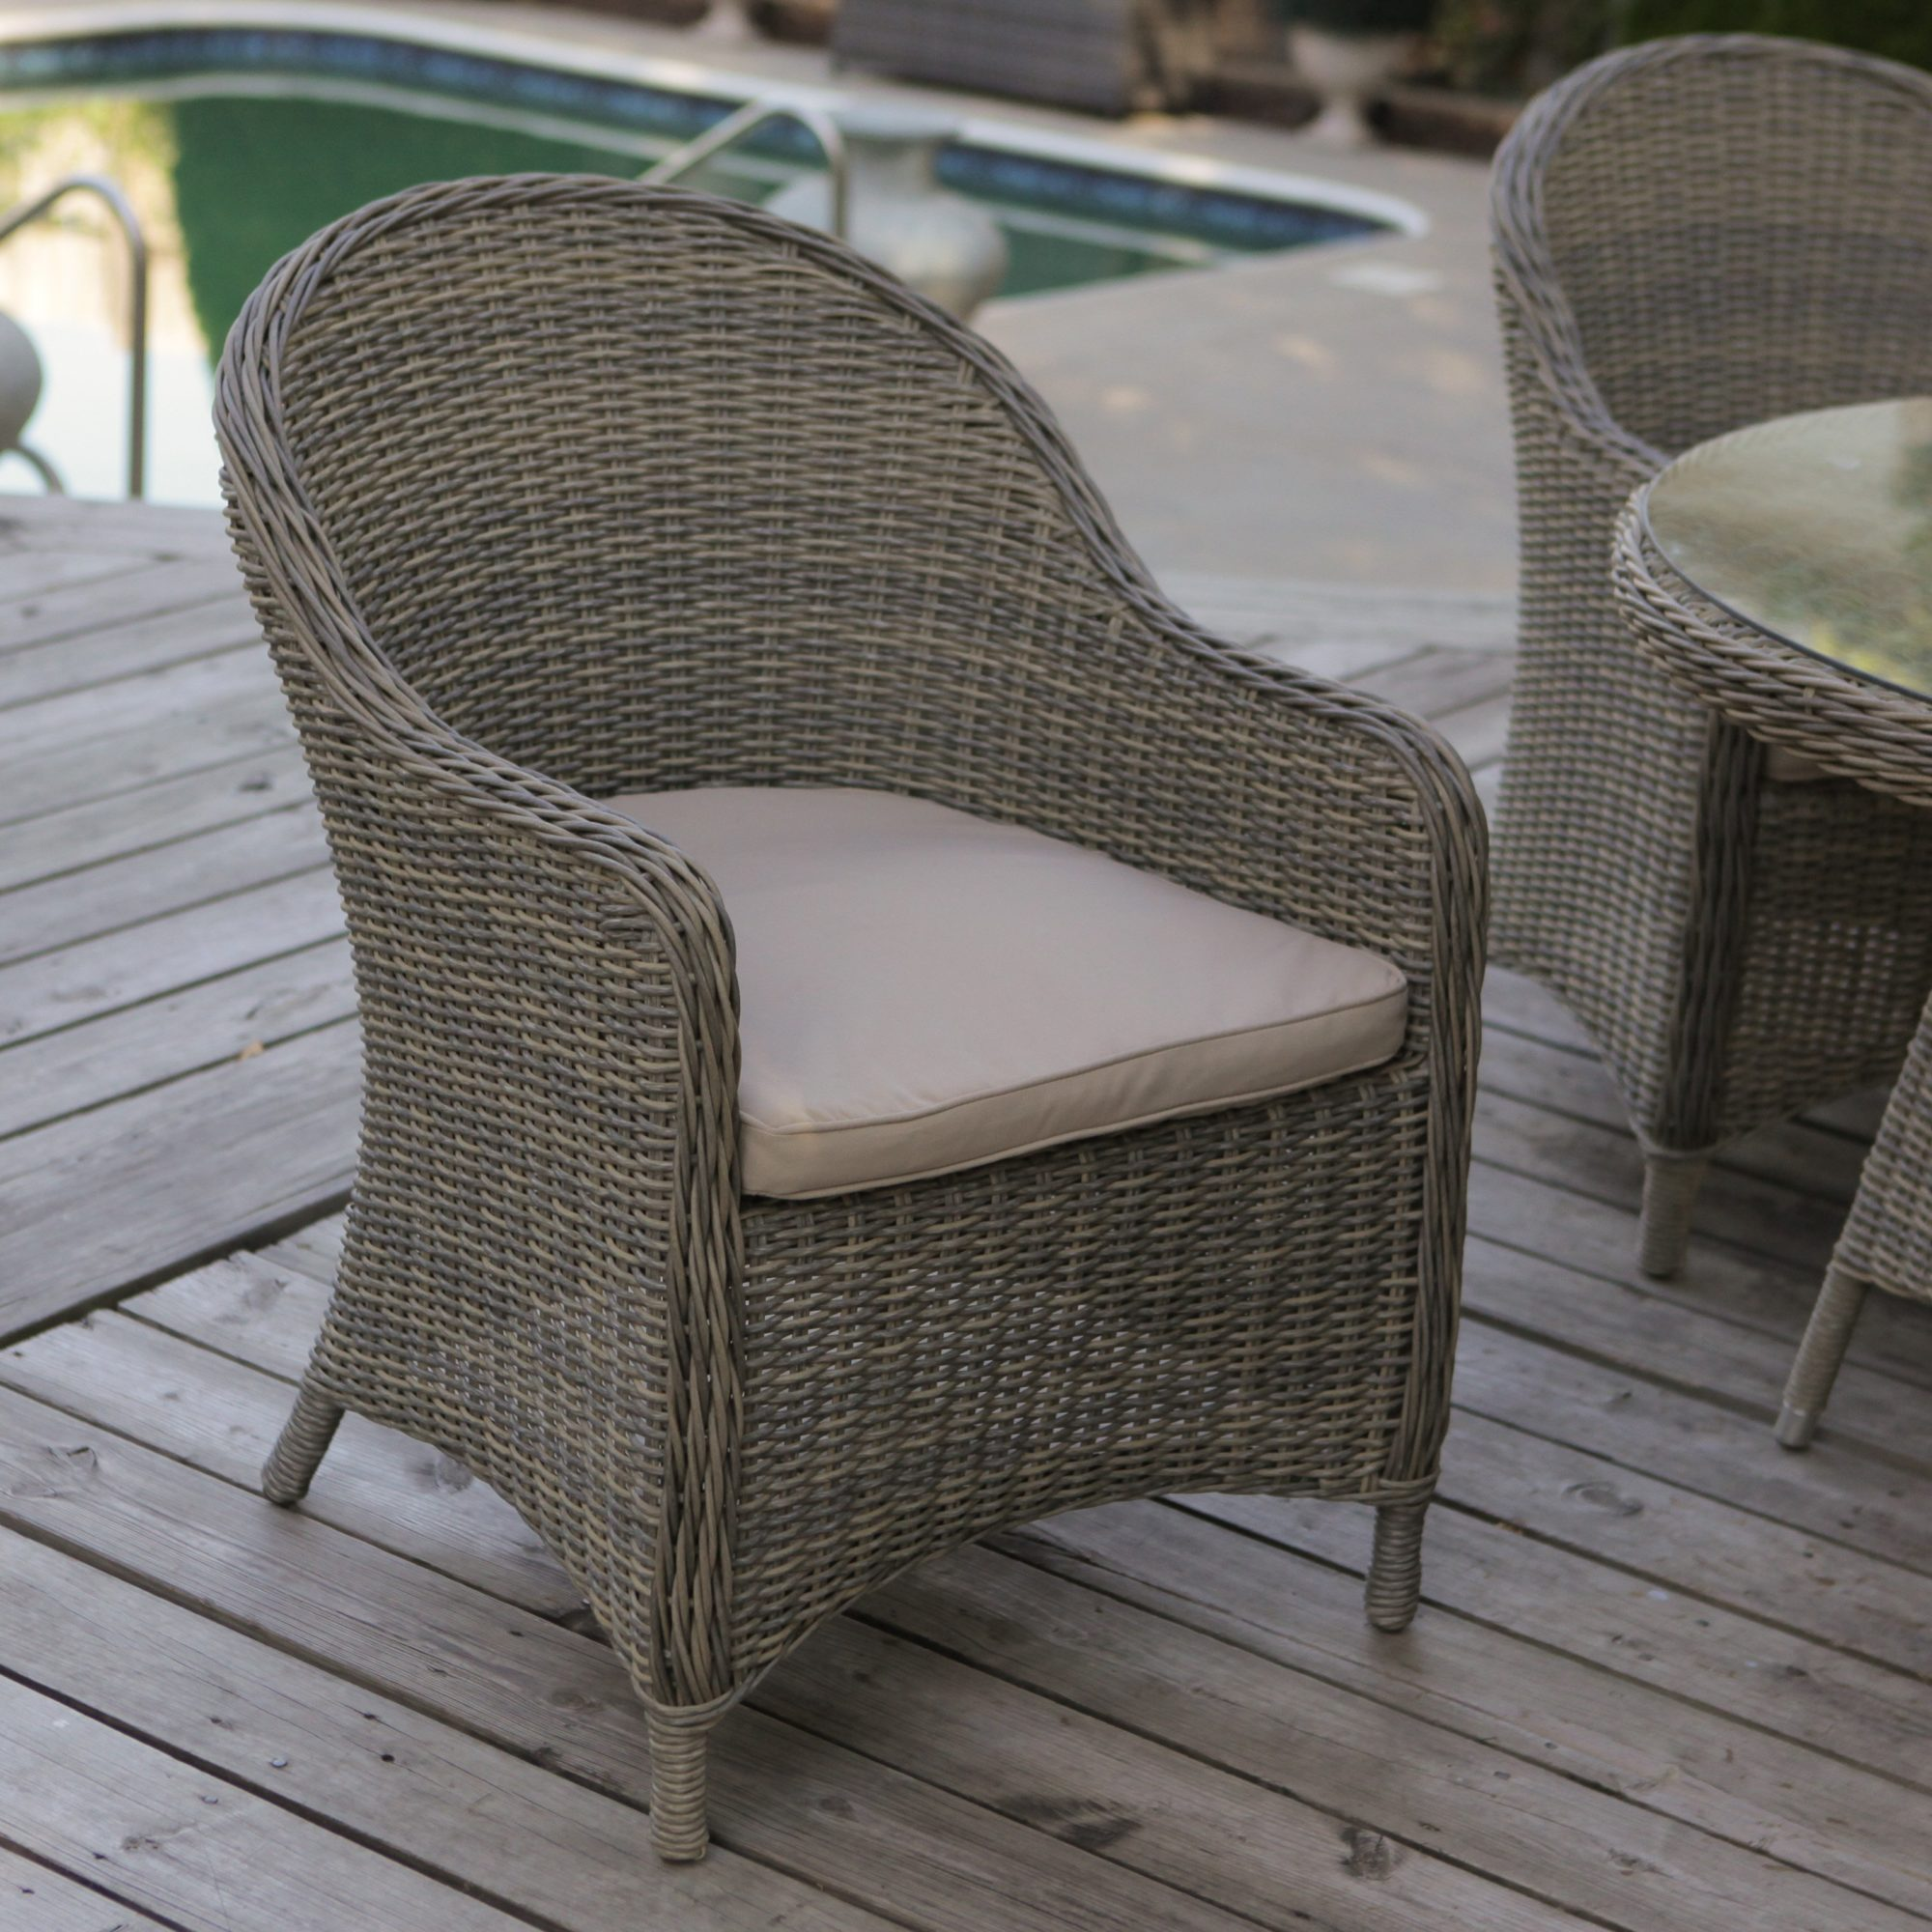 Outdoor wicker furniture for children